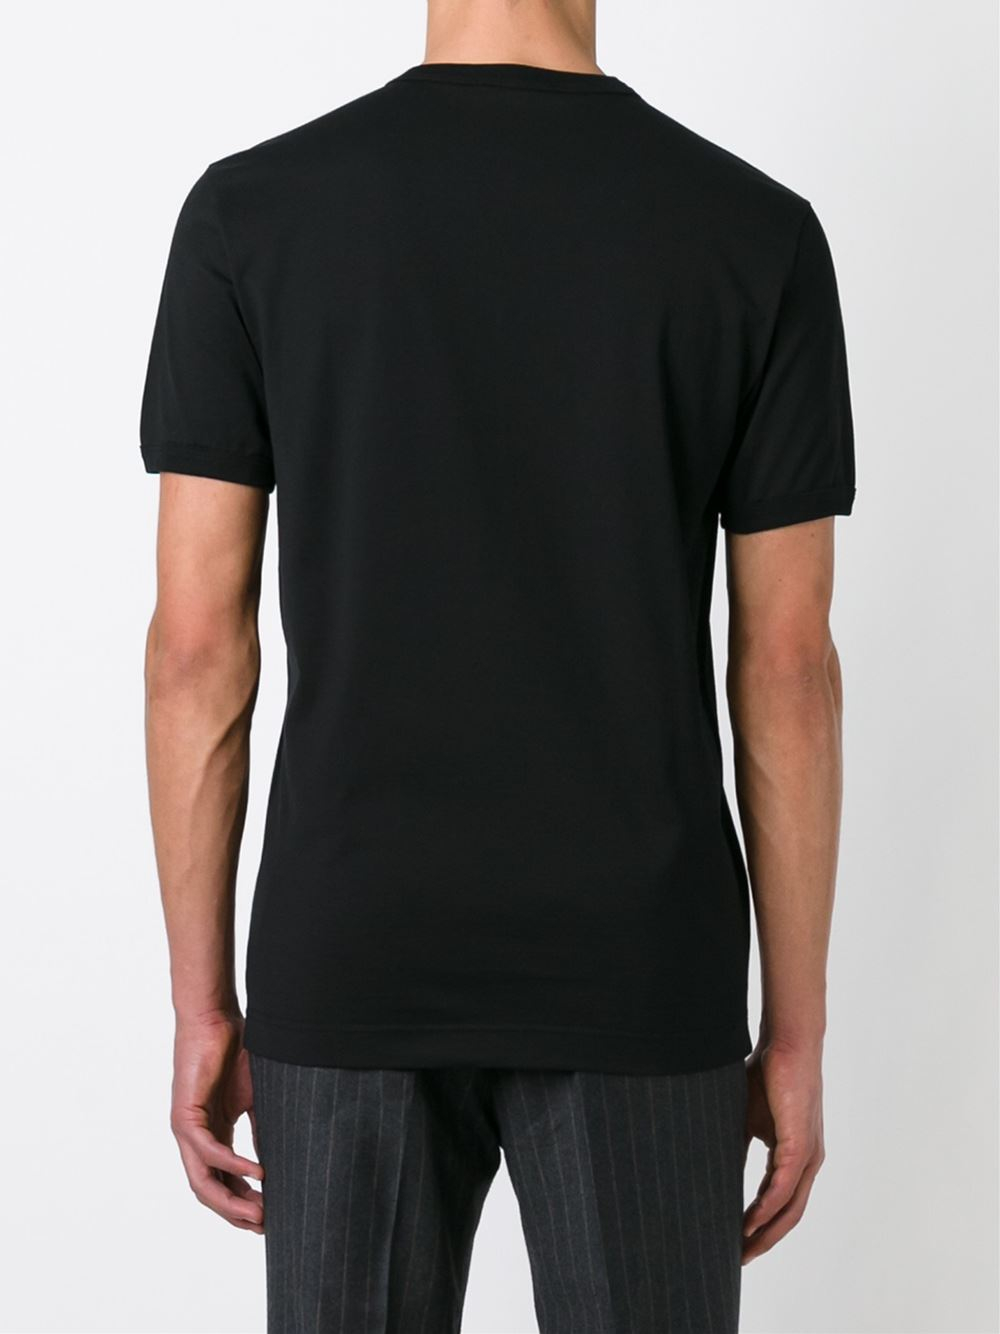 Dolce & gabbana Classic V-neck T-shirt in Black for Men